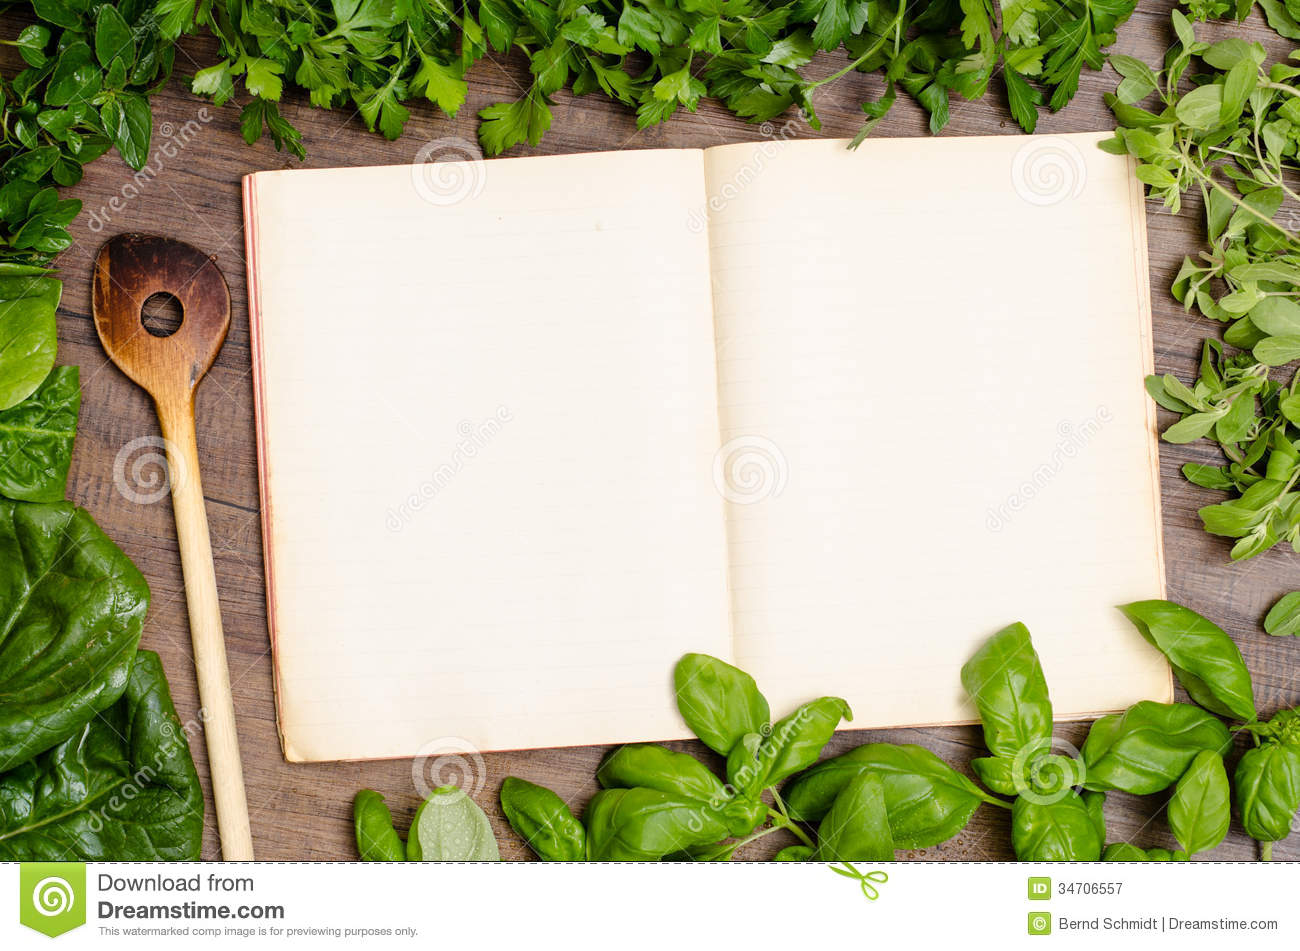 Green Herbs As Frame Around A Cookbook Royalty Free Stock ...